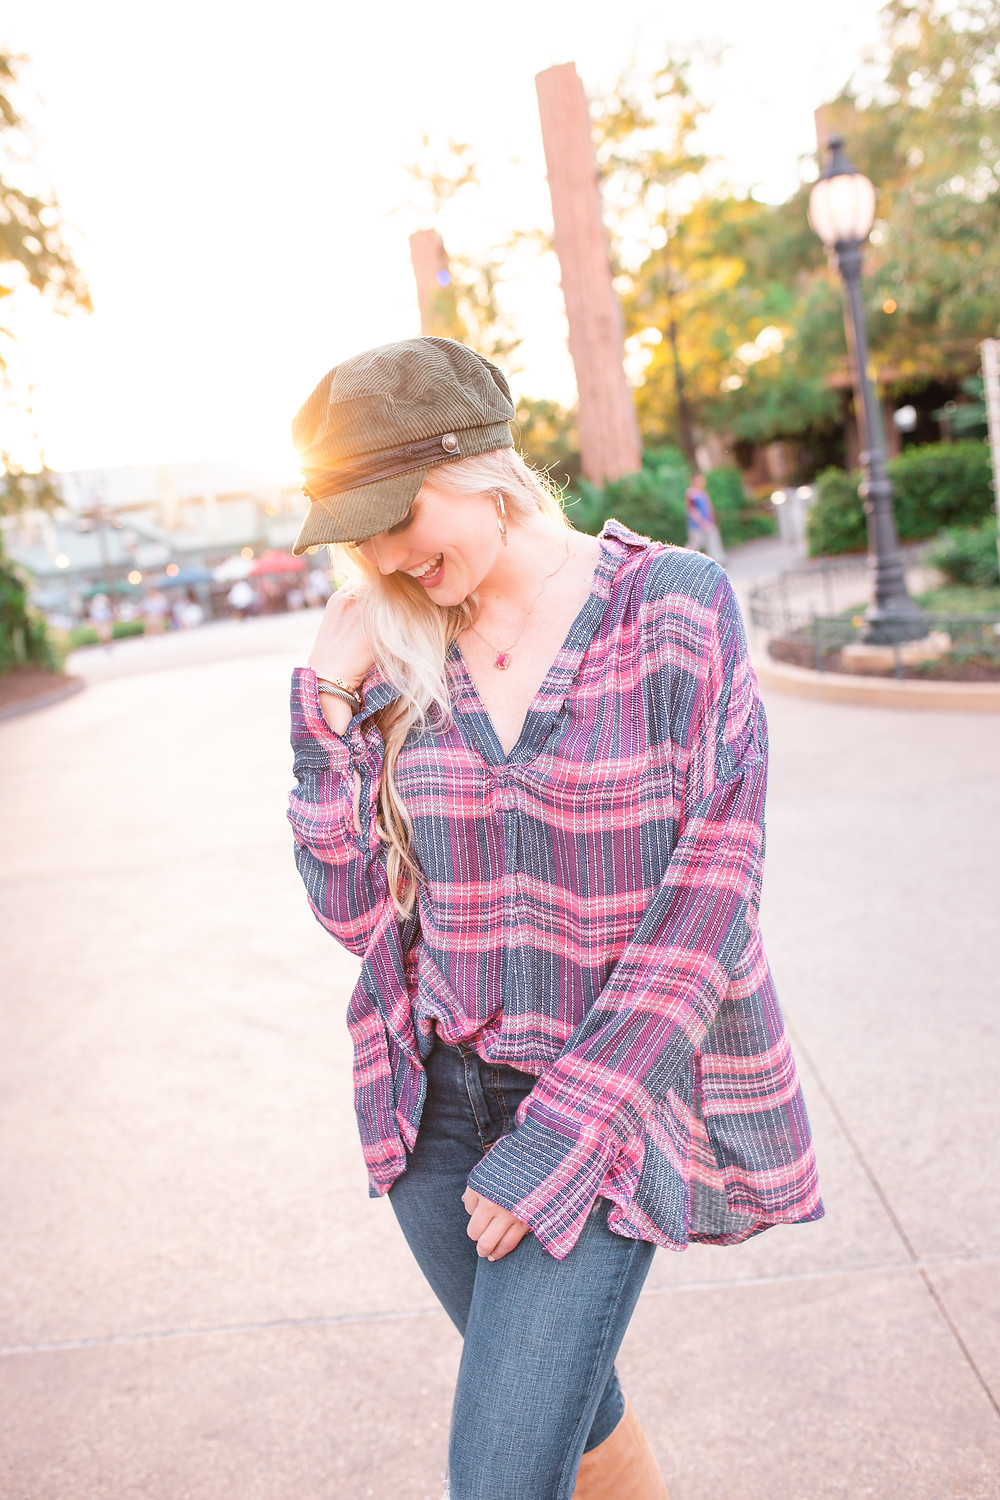 On Trend with Plaid